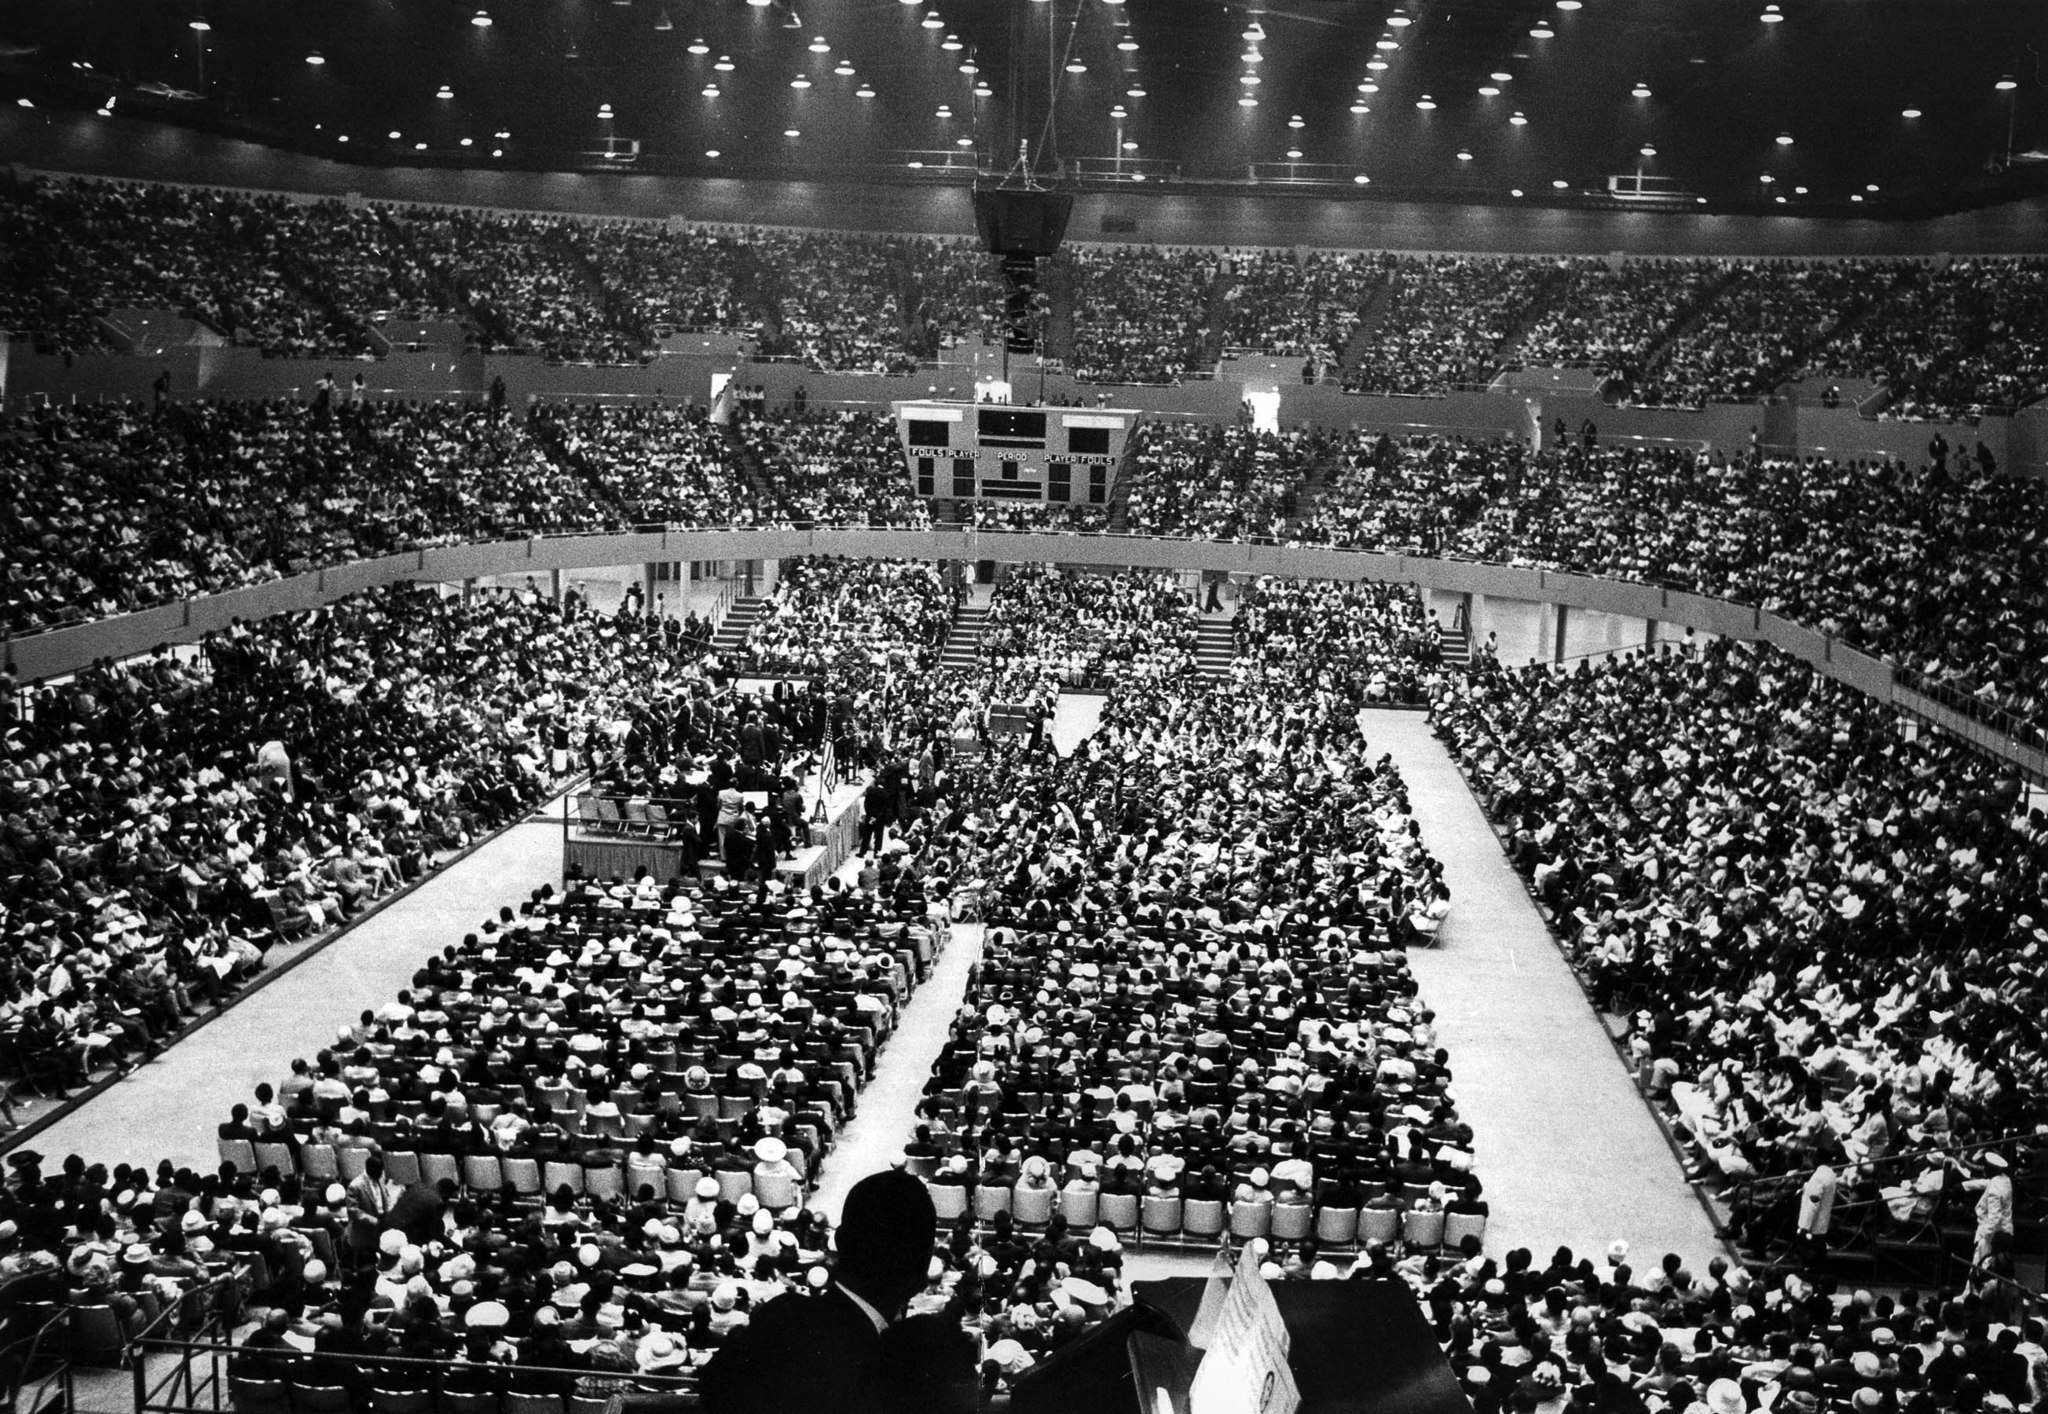 June 18, 1961: Interior of Sports Arena with crowd gathered to hear Rev. Martin Luther King, Jr. spe